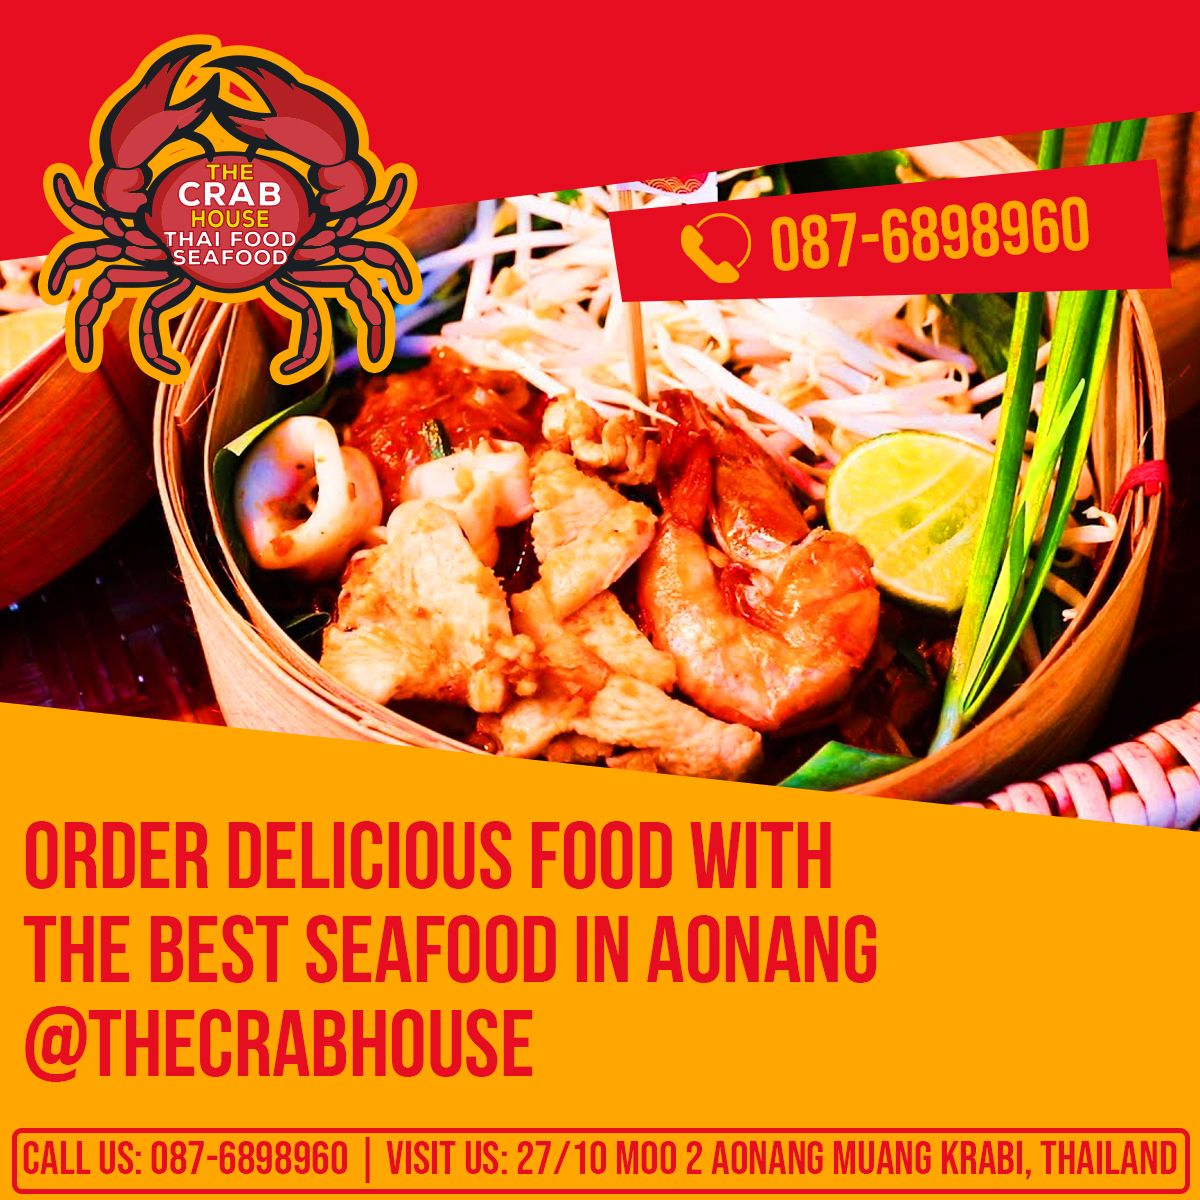 Order Delicious Food With The Best Seafood In Aonang